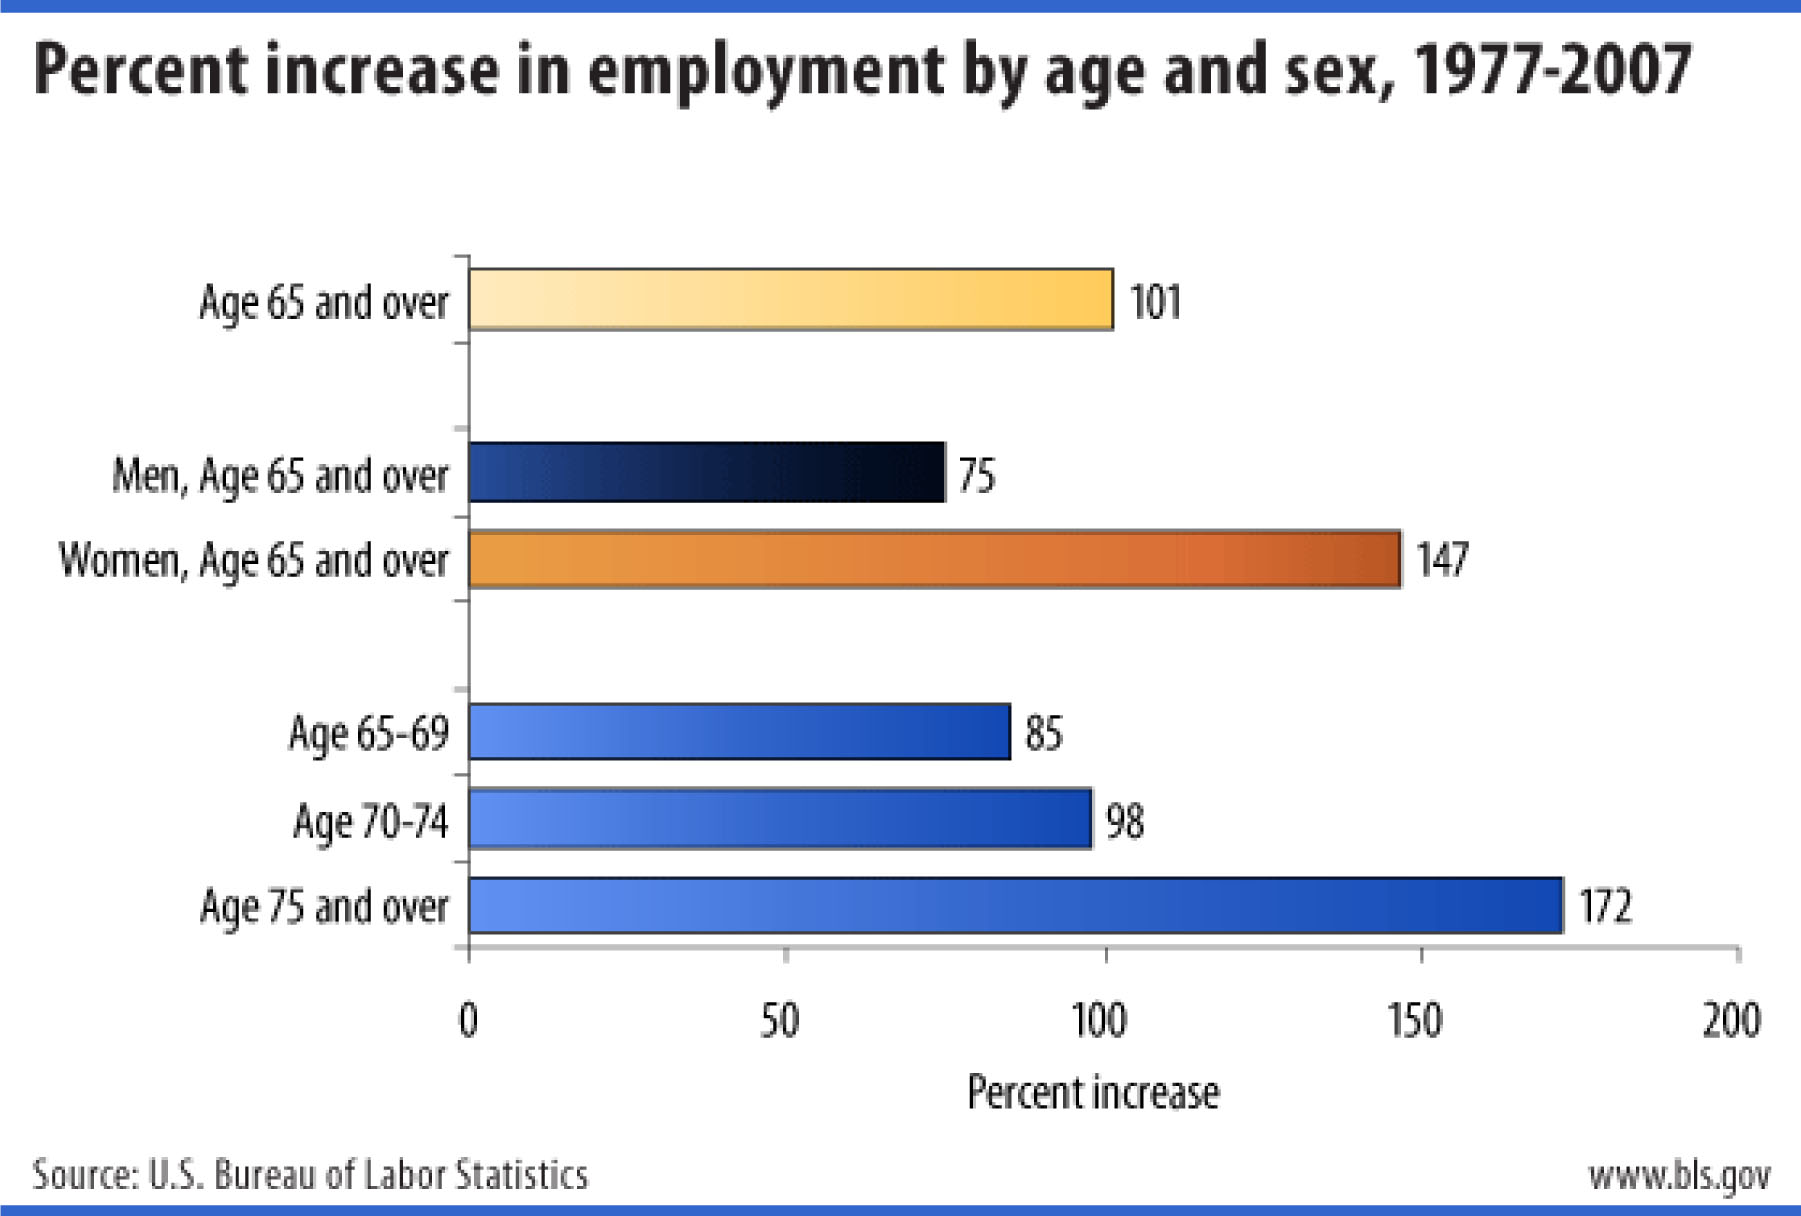 Percent increase in employment by age and sex, 1977-2007